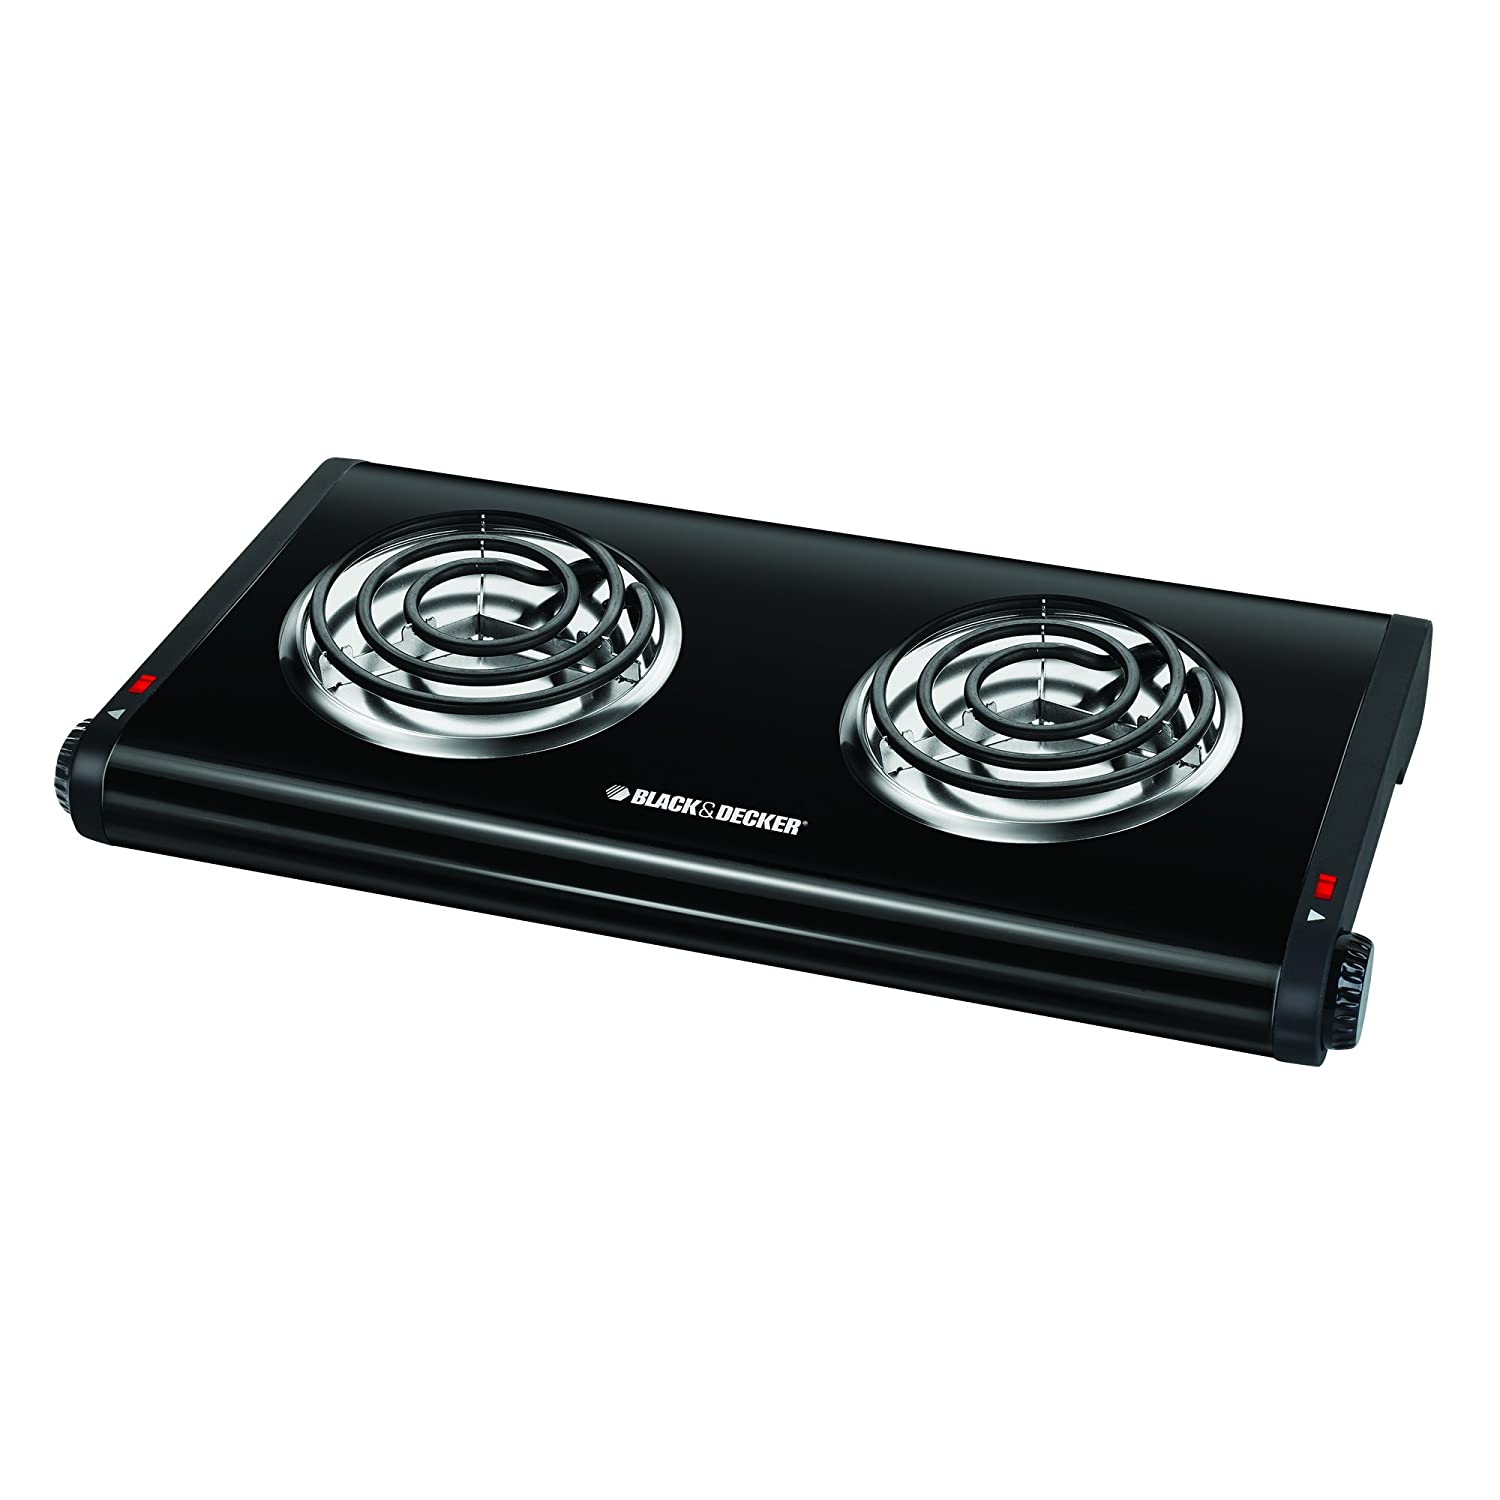 Countertop Gas Stove Portable : Double Burner Portable Buffet Range Heat Countertop Lightweight ...